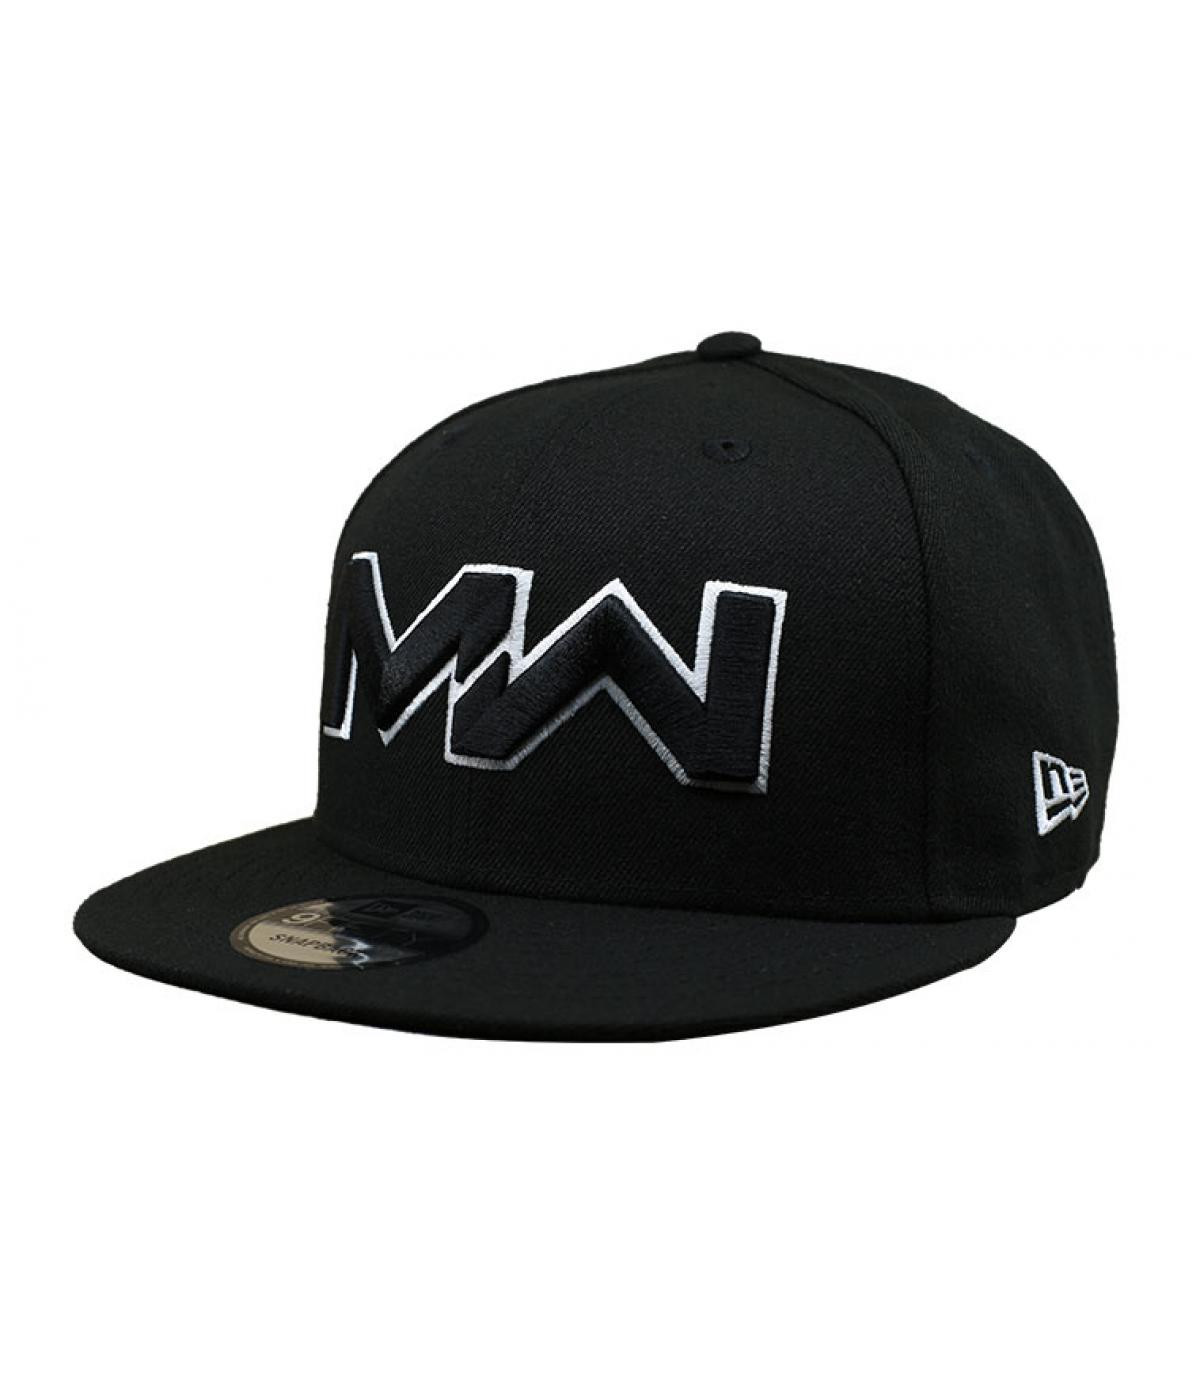 Details Snapback Call of Duty MW - afbeeling 2